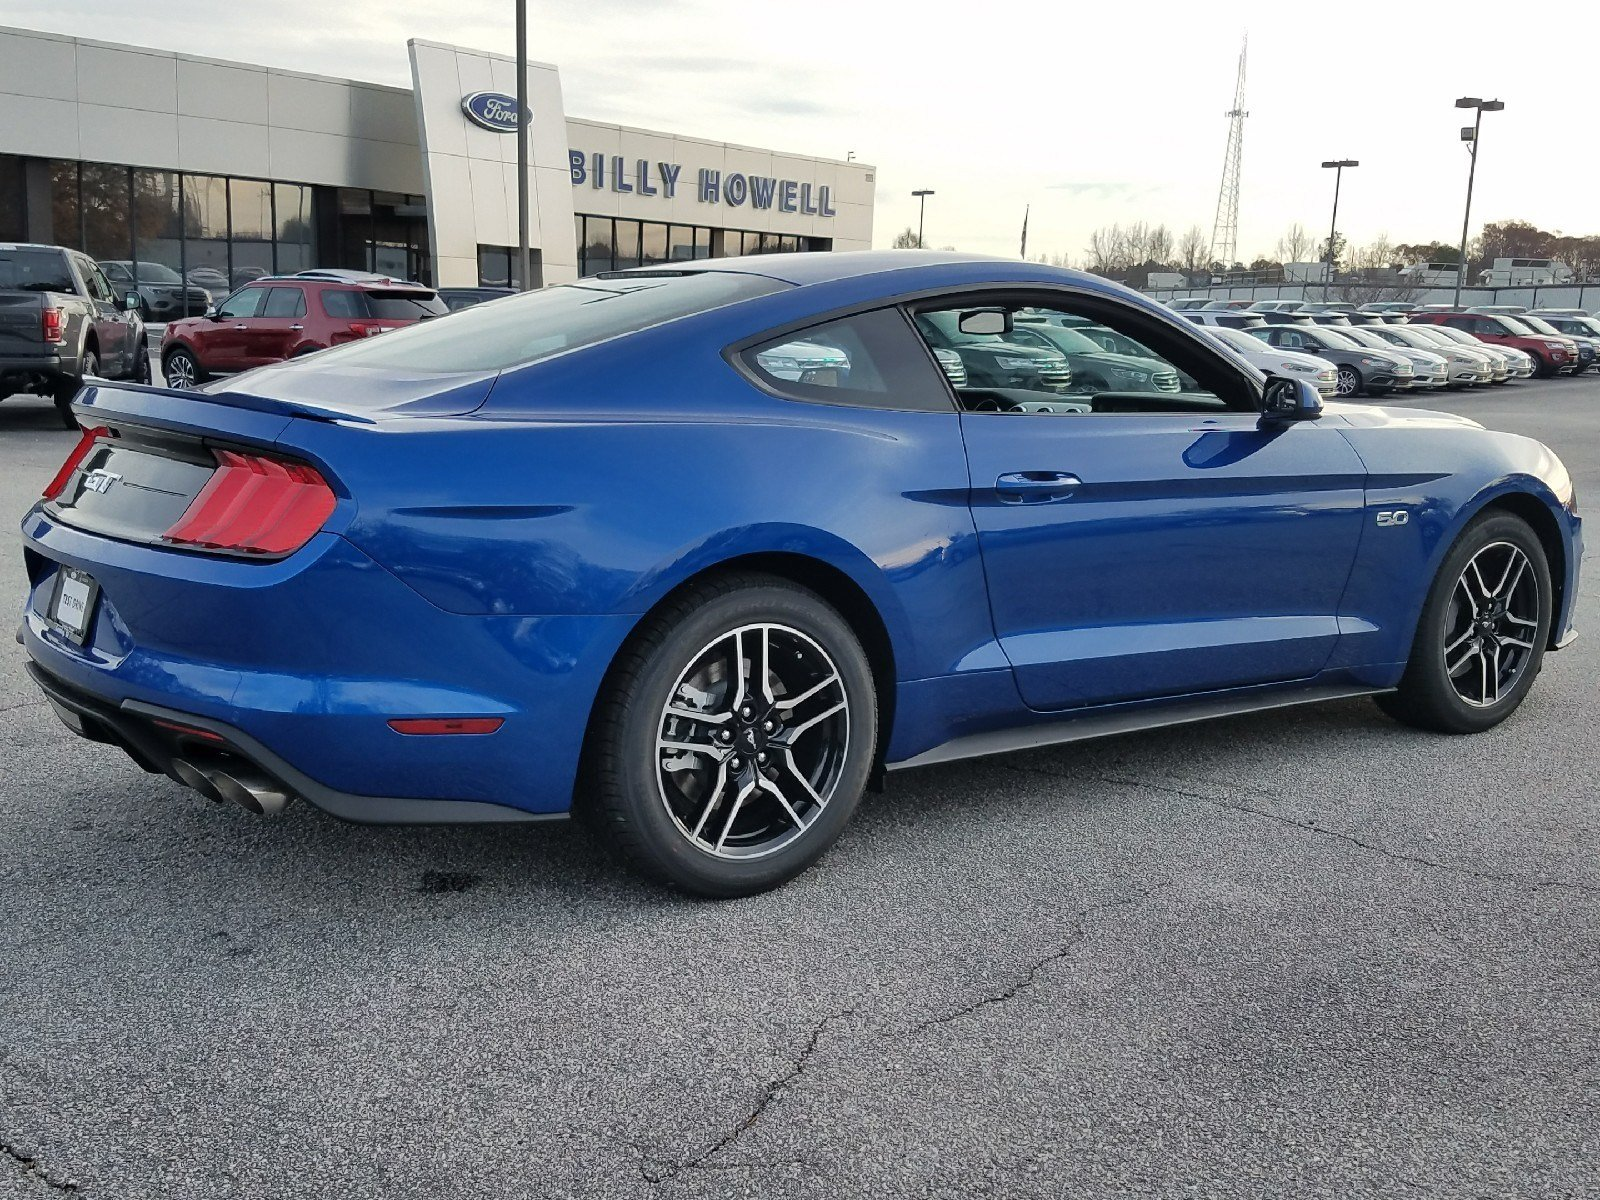 2018 Lightning Blue Ford Mustang GT 2 Door Manual Sedan RWD 5.0L Ti-VCT V8 Engine